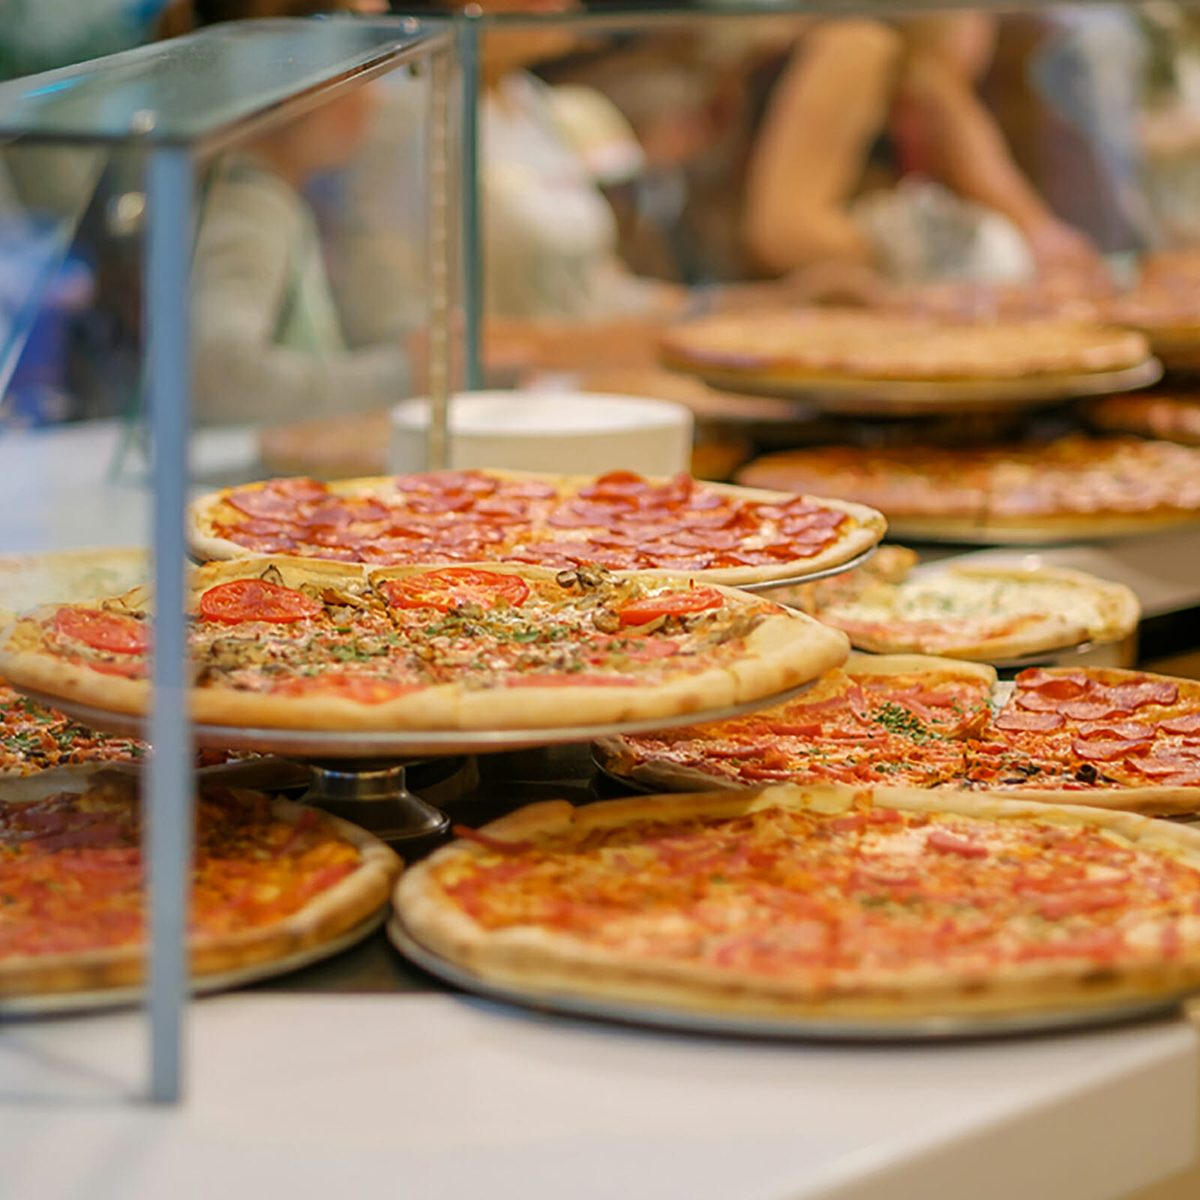 Variety of yummy pizzas under shopping window in pizzeria; Shutterstock ID 676292251